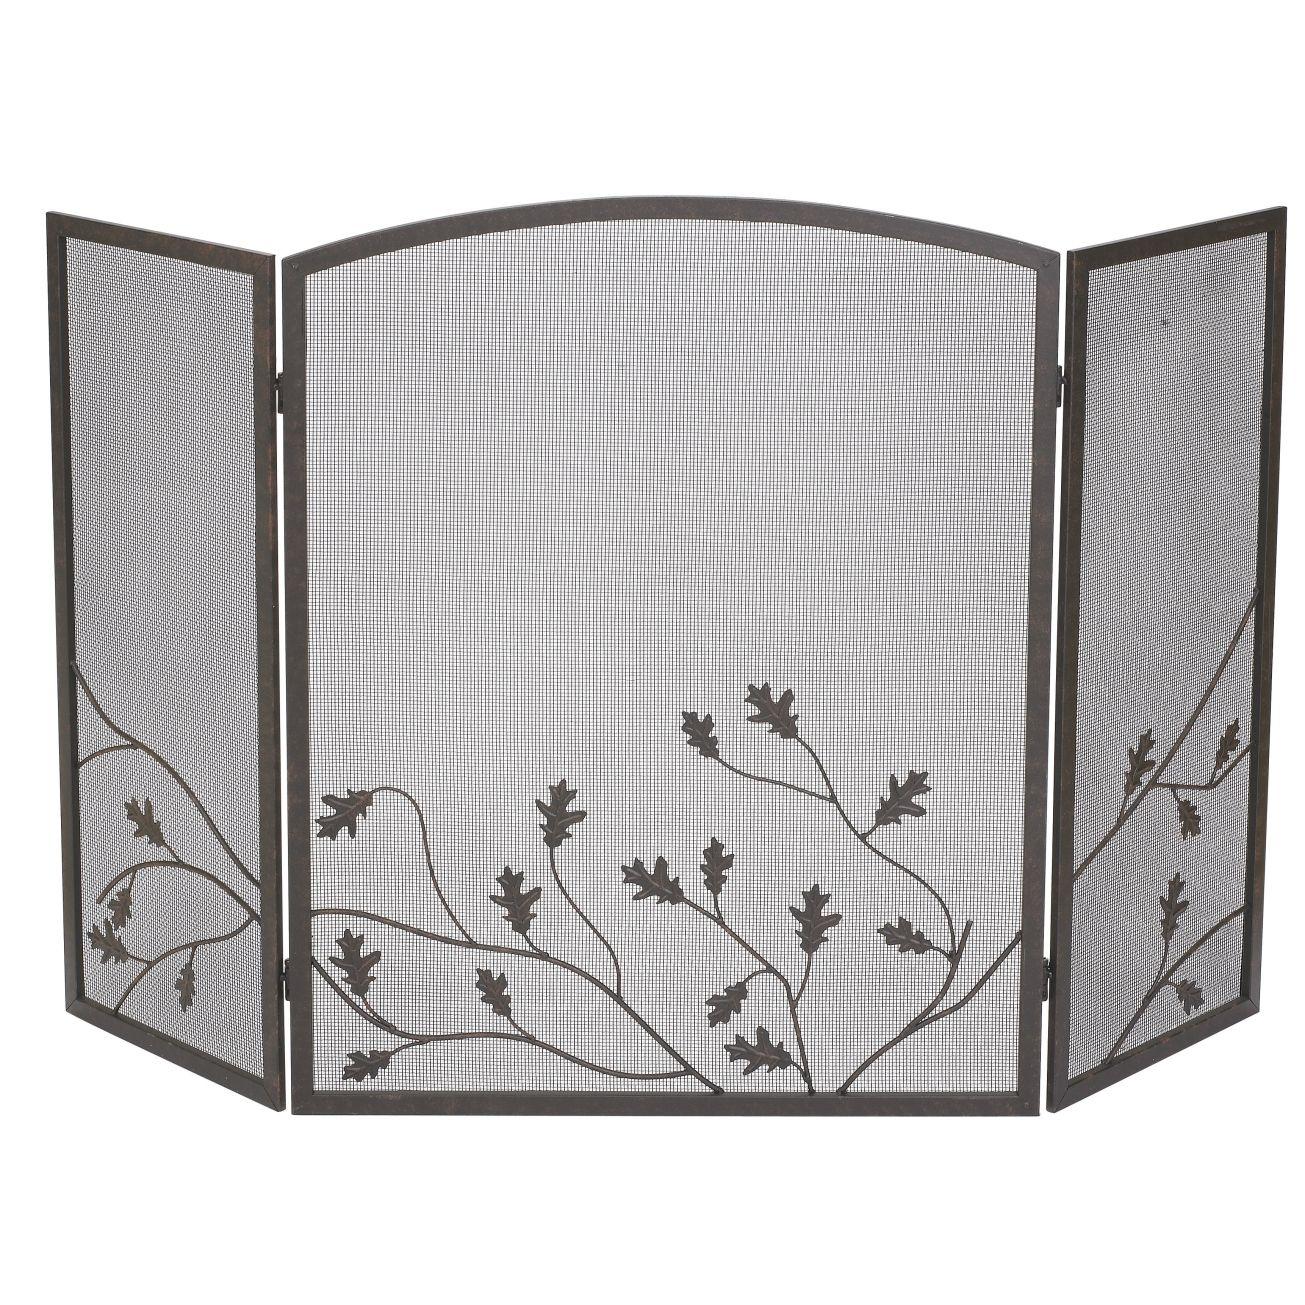 country fireplace soul marcus panel off vintage screen tole white by french neiman antique intelligent iron distressed design pin